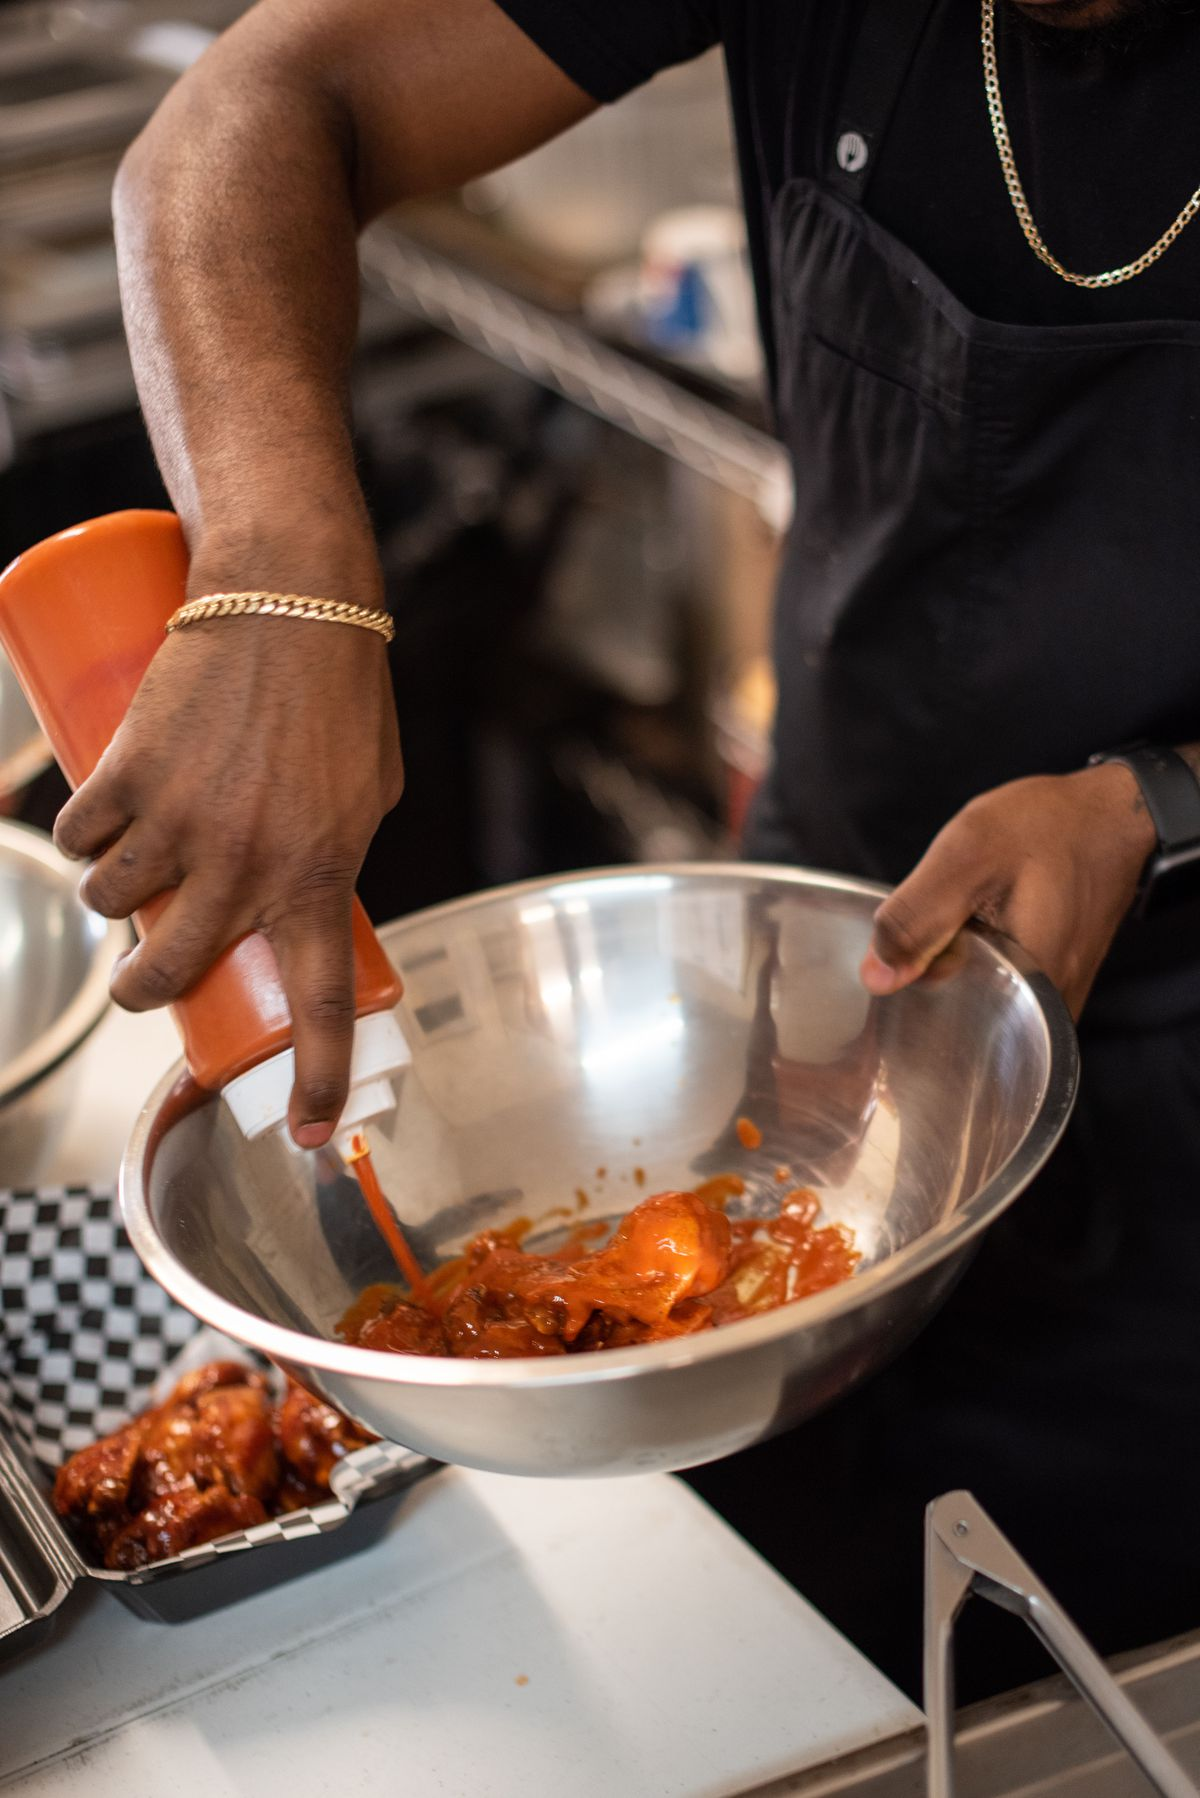 Loading up a shiny metal bowl with sauce for wings.